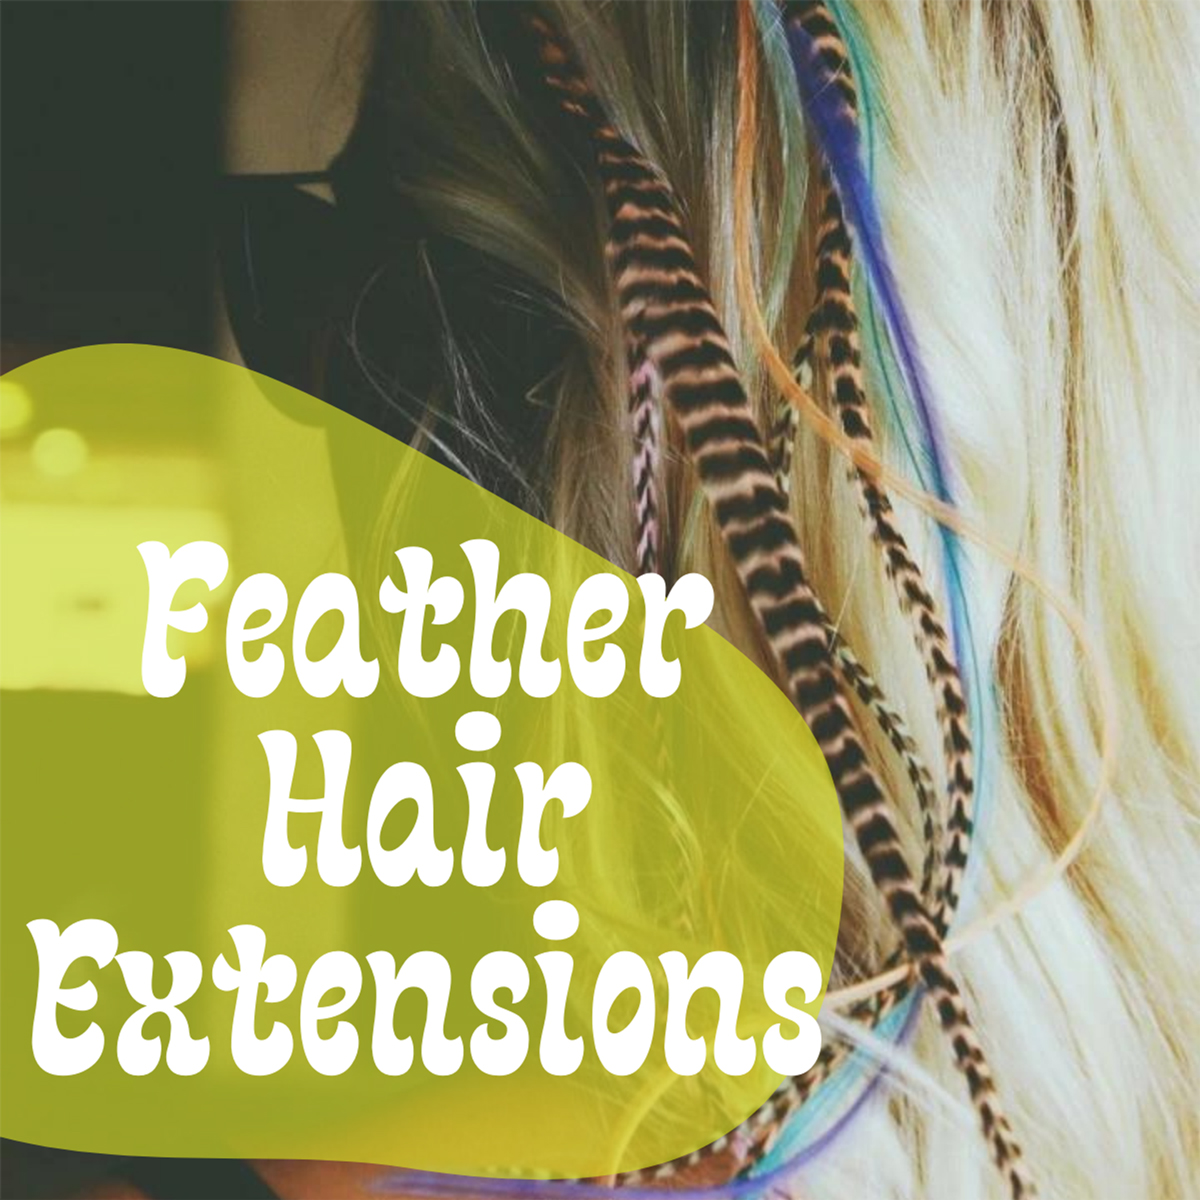 Real Feather Hair ideas for teens